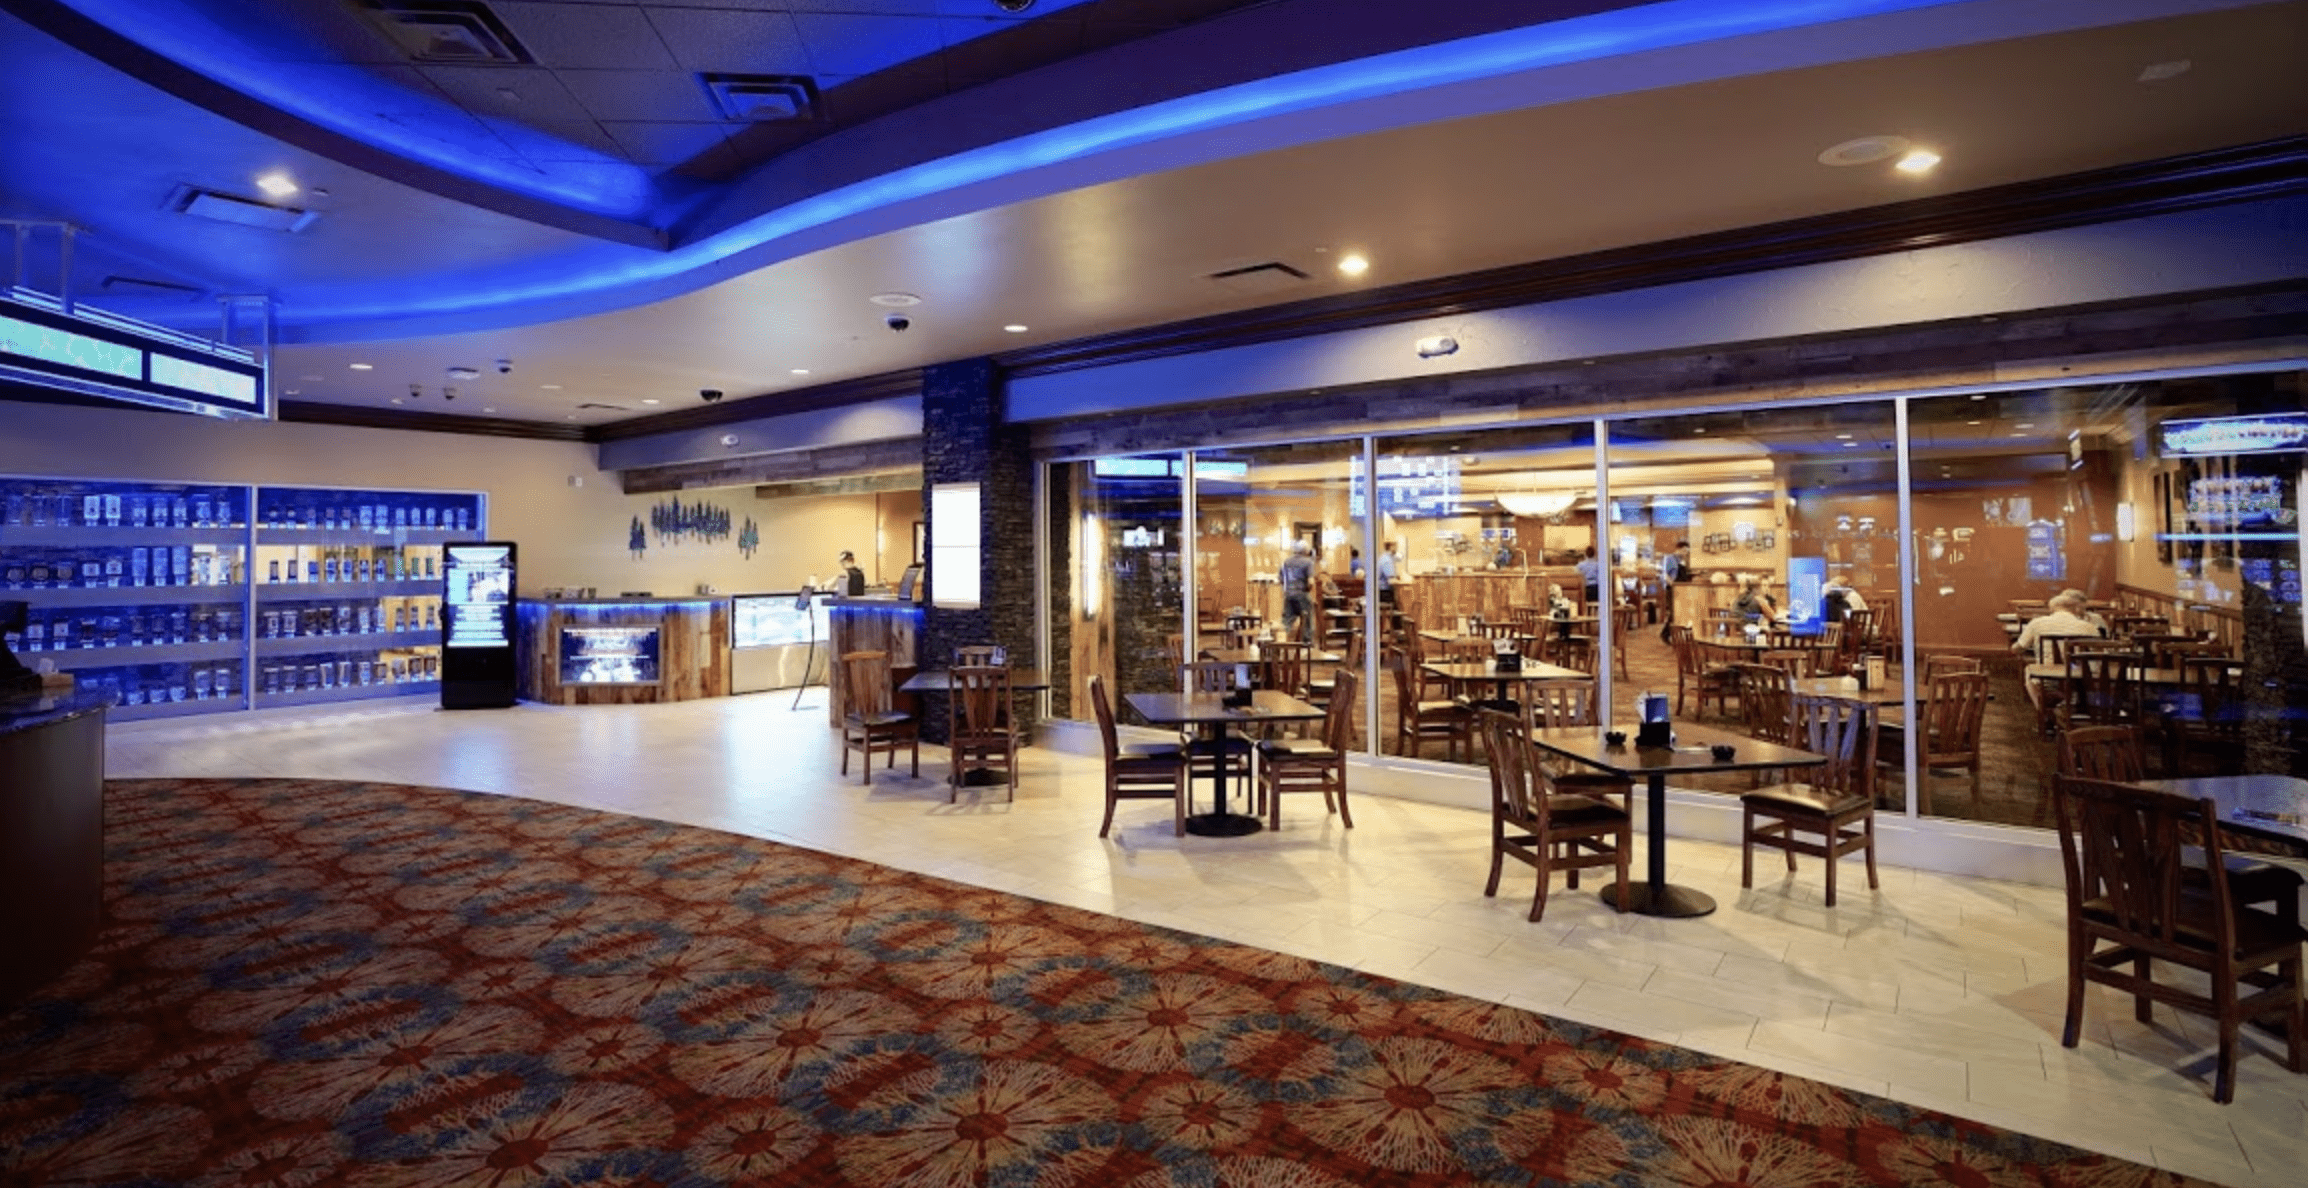 Cow Creek Restaurant Inside Seven Feathers Casino in Canyonville Oregon